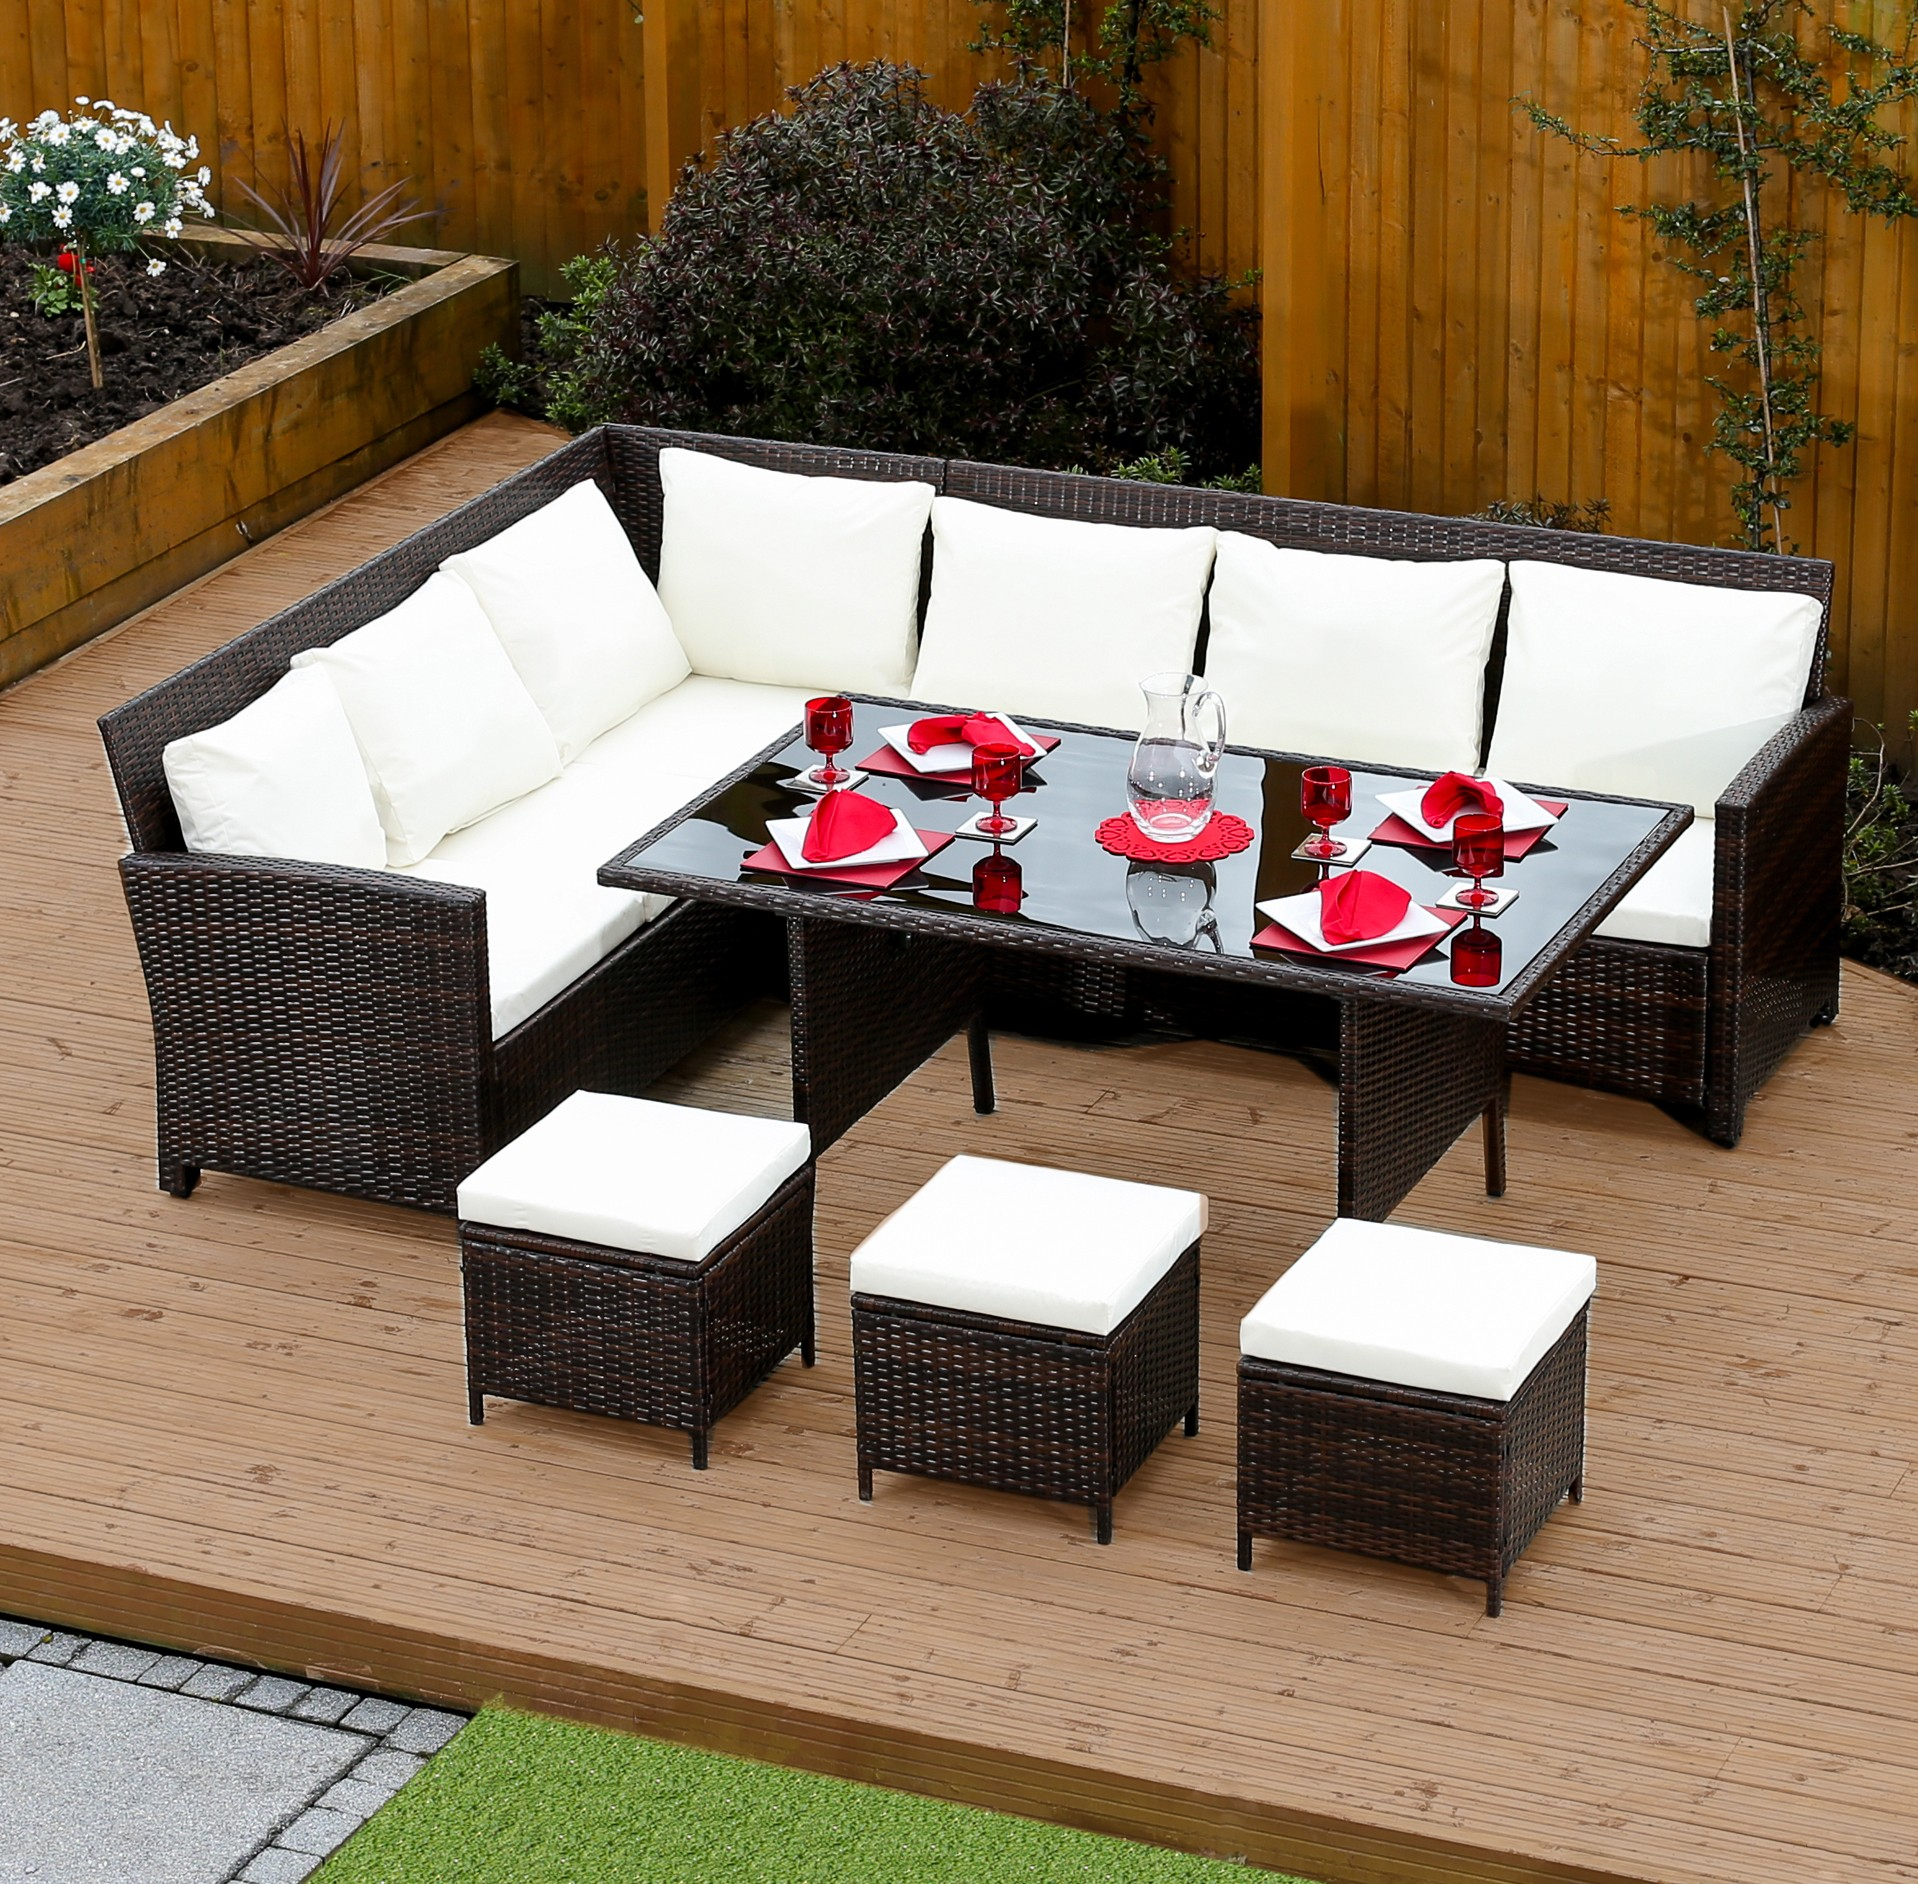 corner dining furniture. 9 seater rattan corner garden sofa u0026 dining table set in brown with light cushions furniture